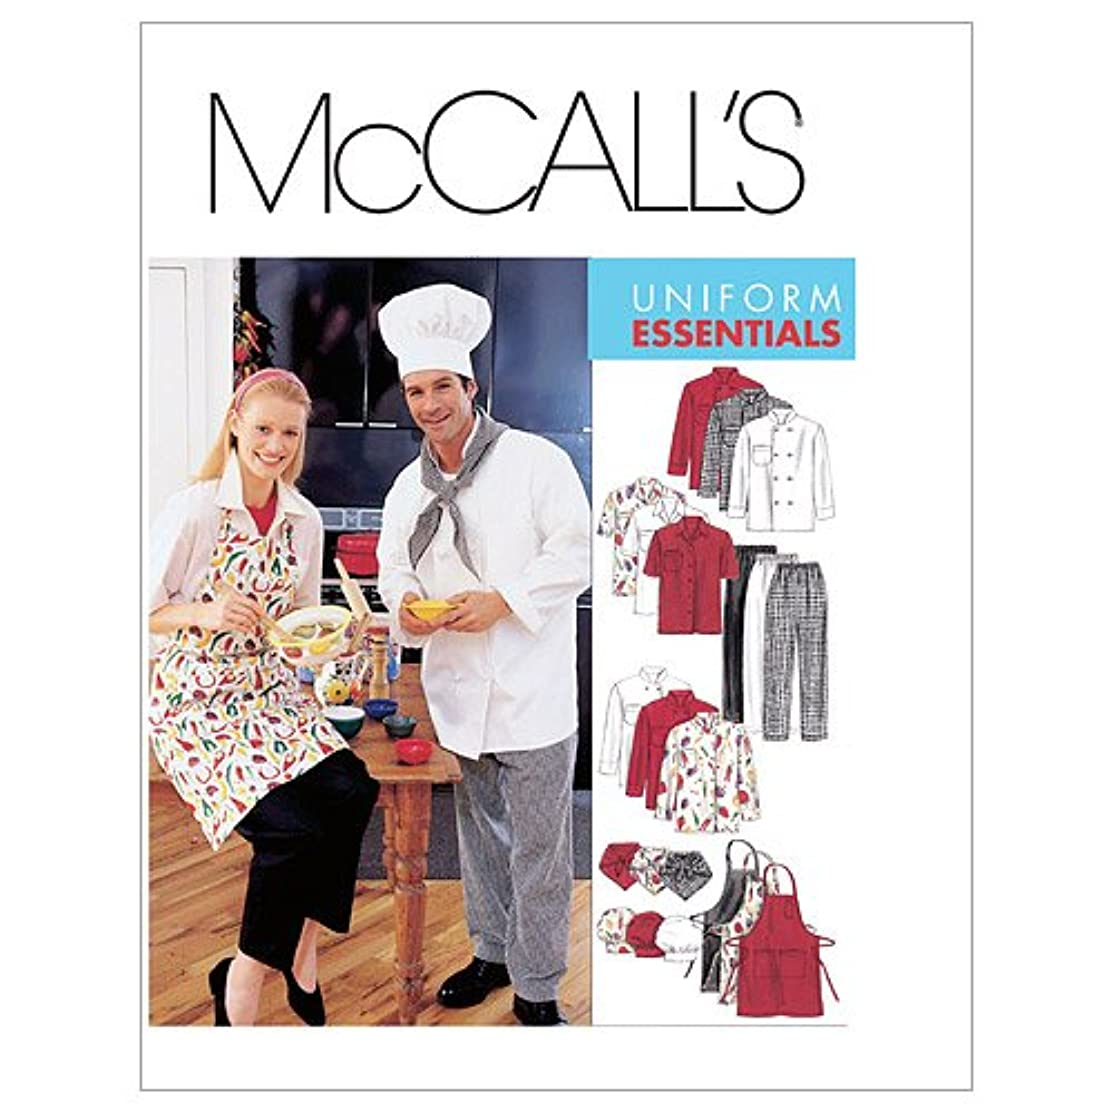 McCall's Patterns M2233 Misses' and Men's Jacket, Shirt, Apron, Pull-On Pants, Neckerchief and Hat, Size XXL